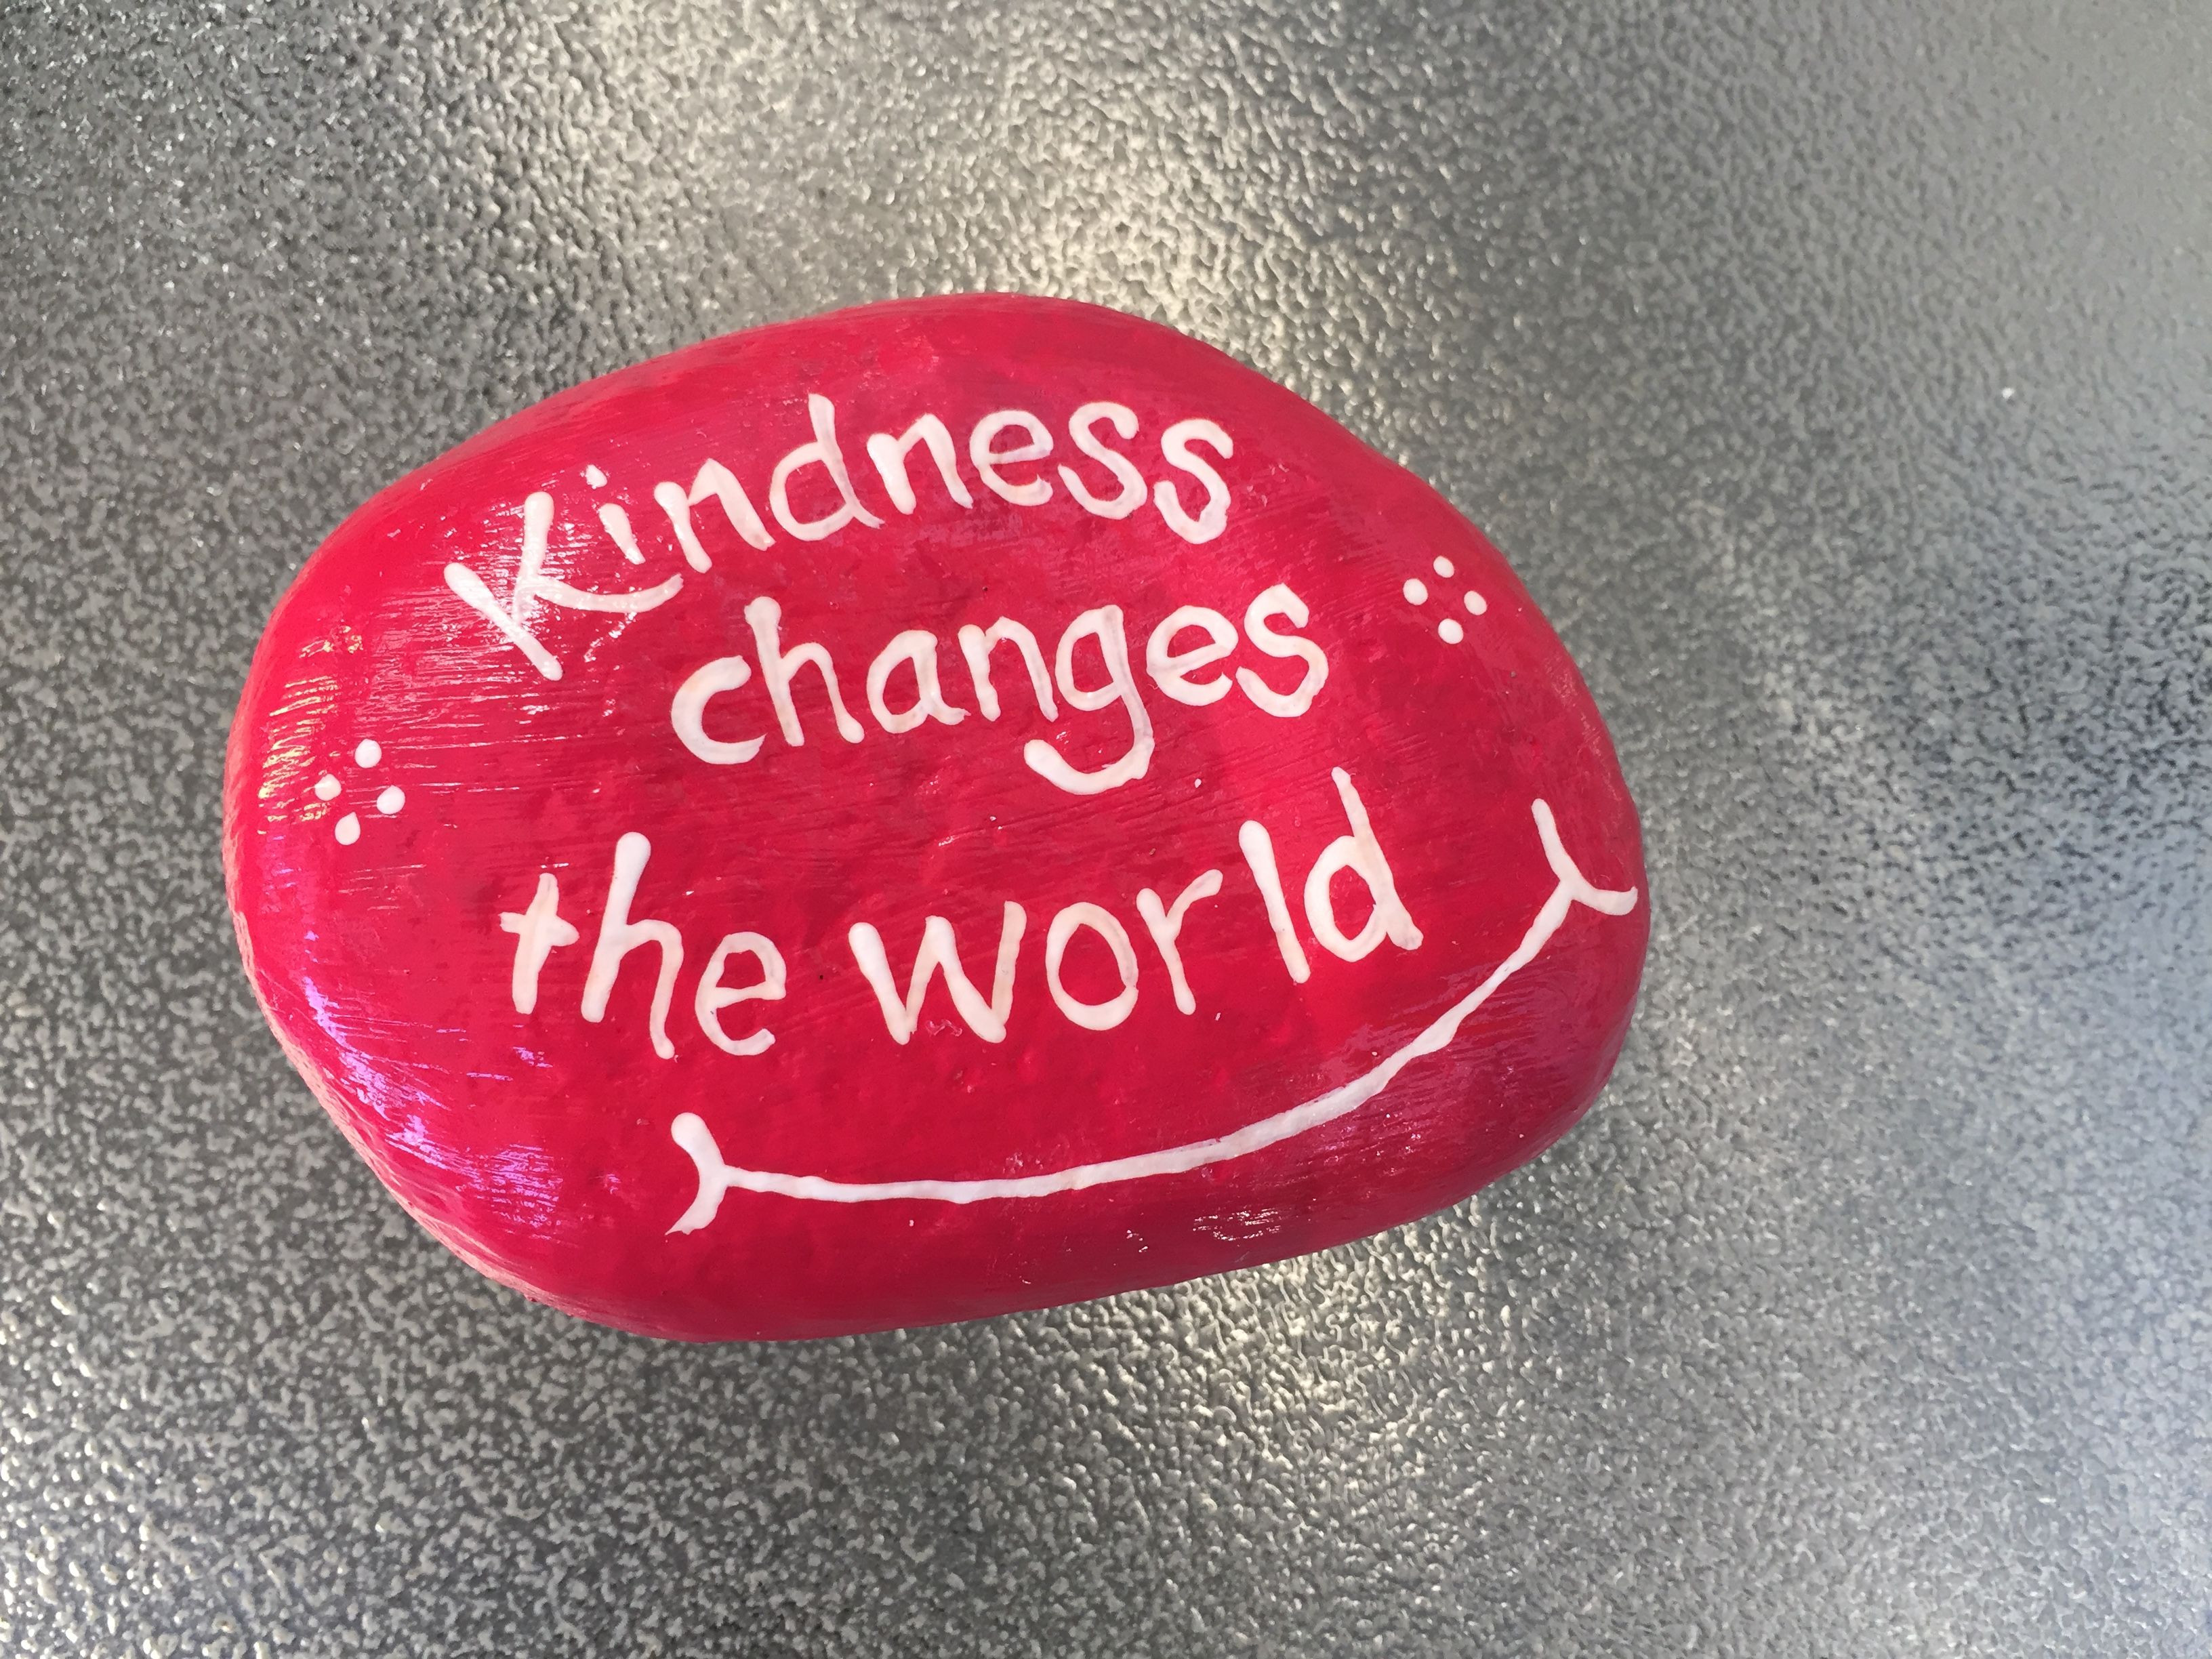 Kindness Rocks Quotes  Kindness changes the world Hand painted rock by Caroline